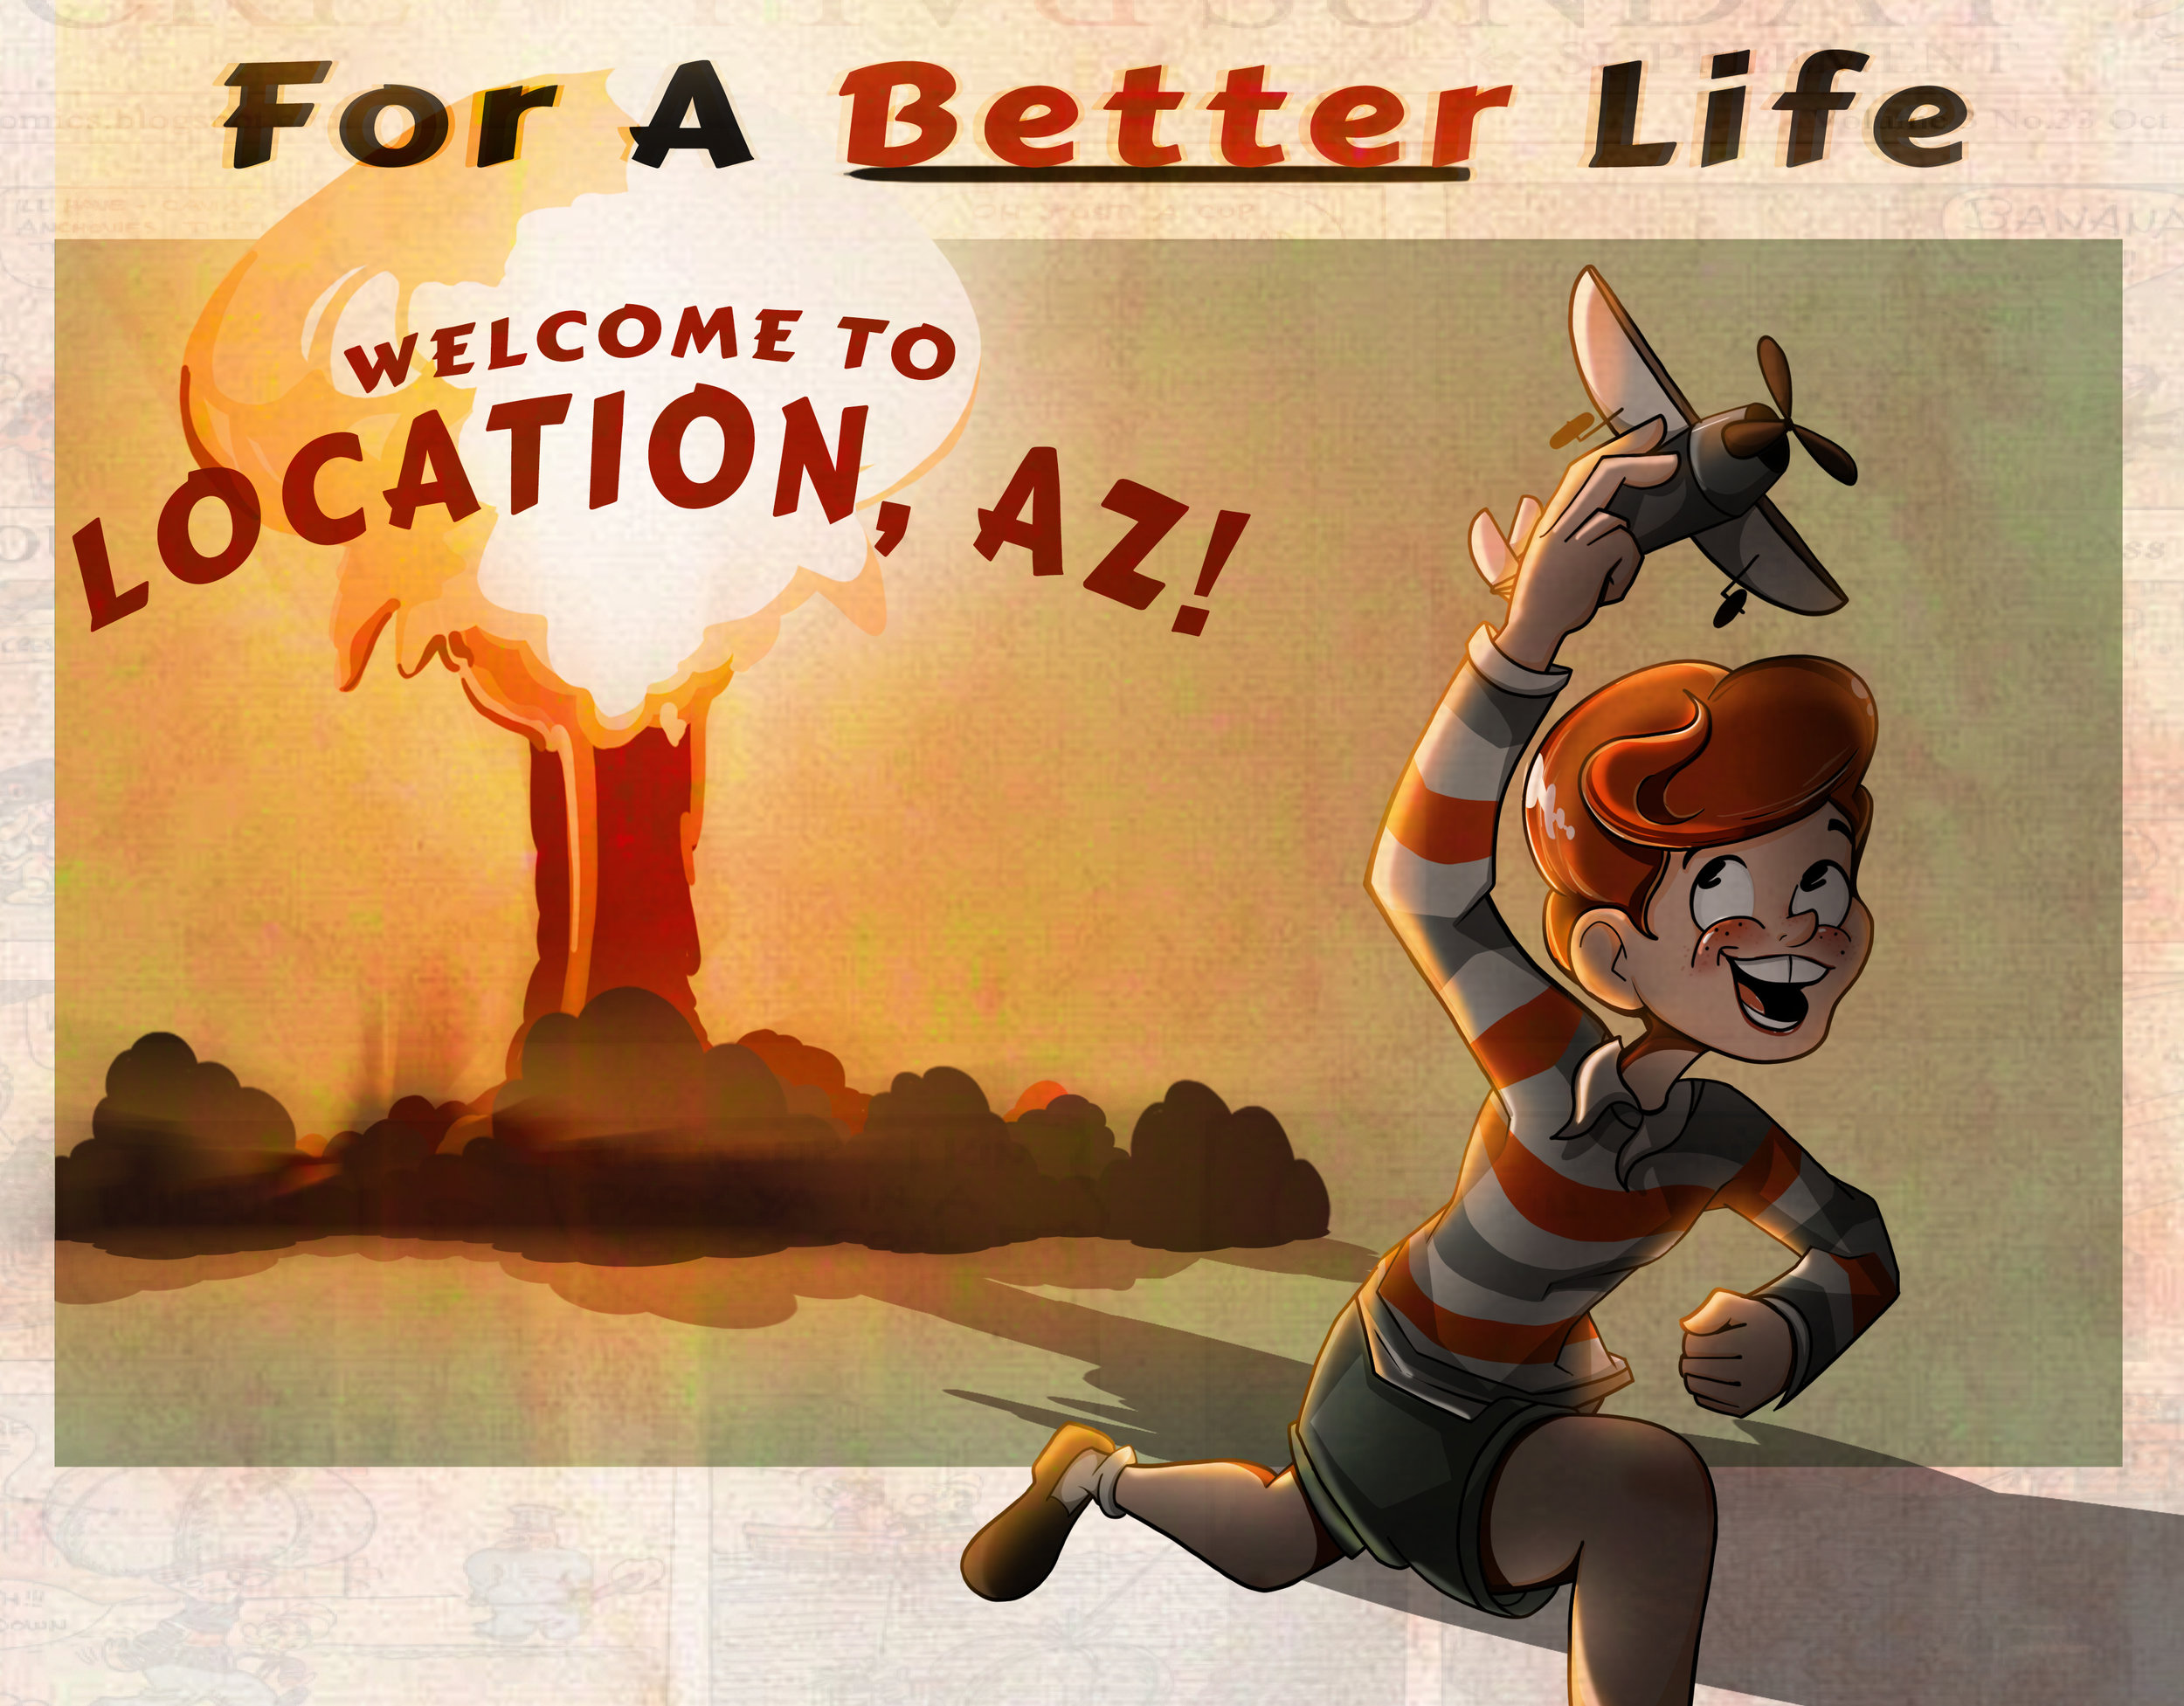 LocationAZ_1.jpg